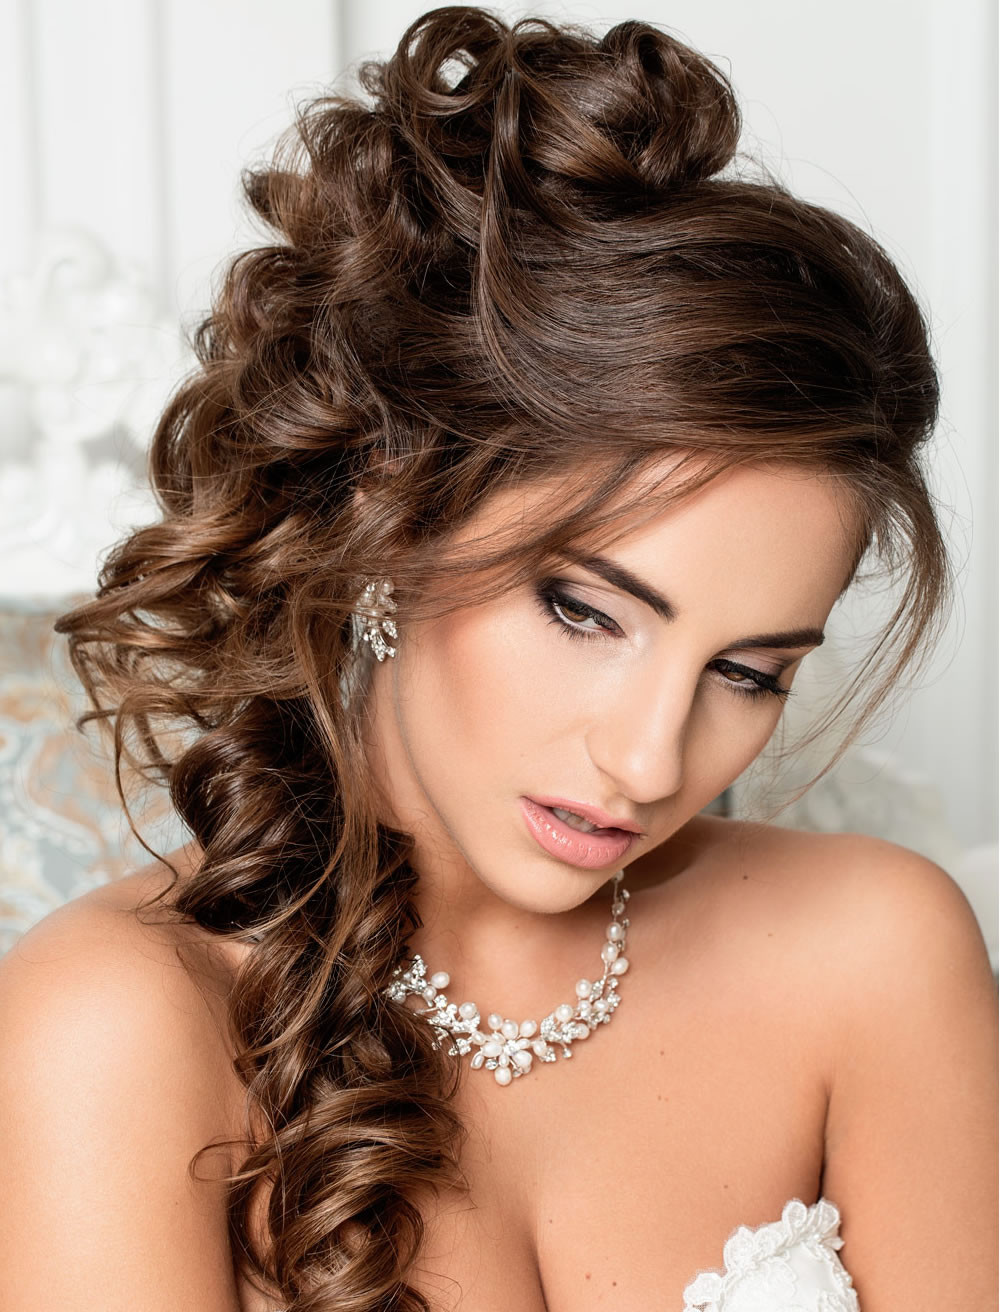 Hairstyles For Bridesmaids 2019  Very Stylish Wedding Hairstyles for Long Hair 2018 2019